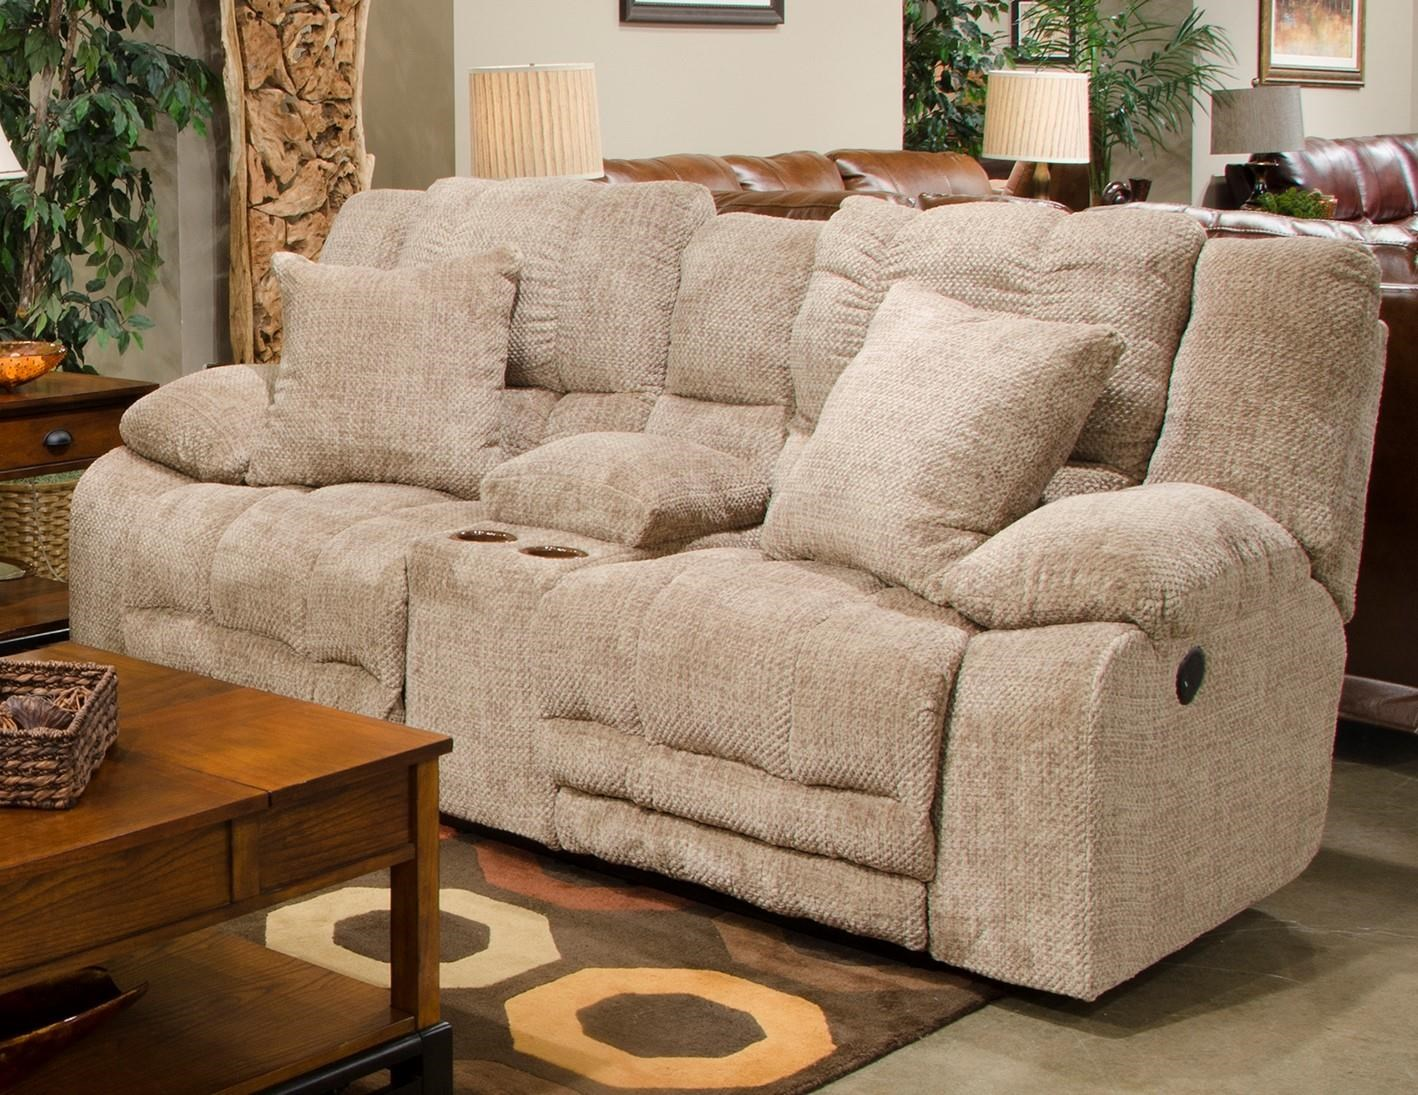 Catnapper 200 Reclining Console Loveseat - Item Number: 2009loveseat